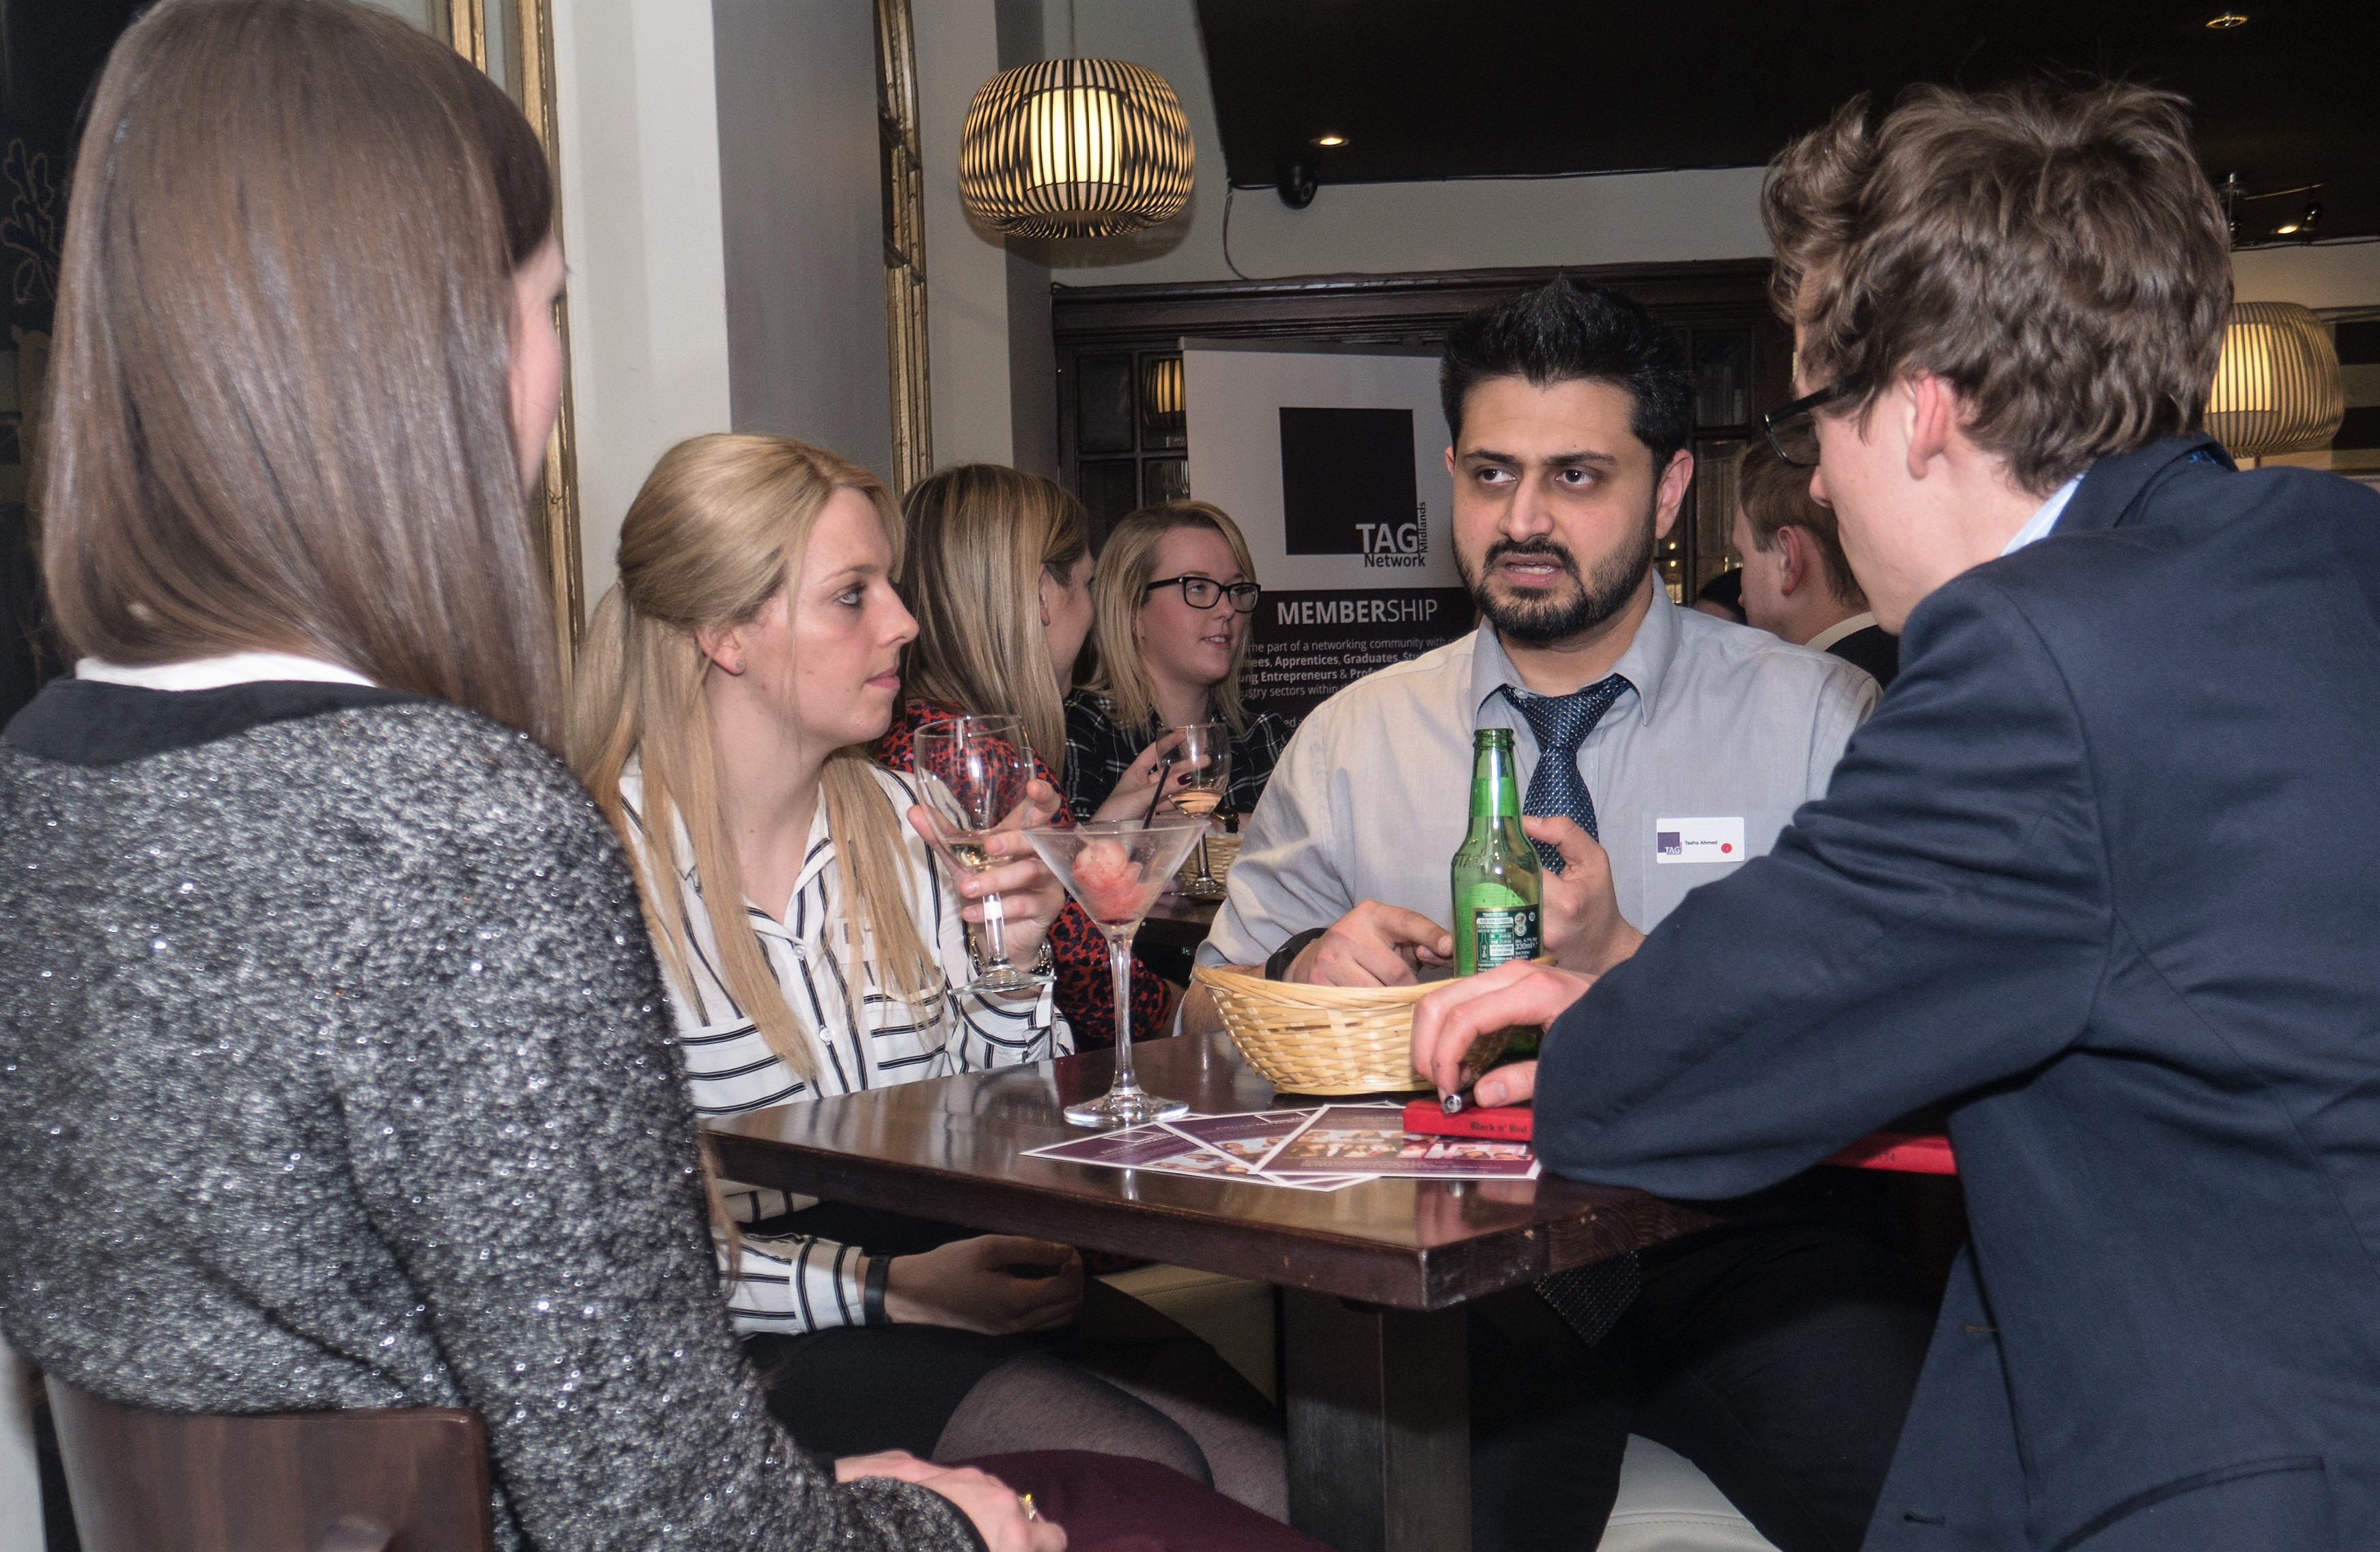 Speed Networking in the Midlands